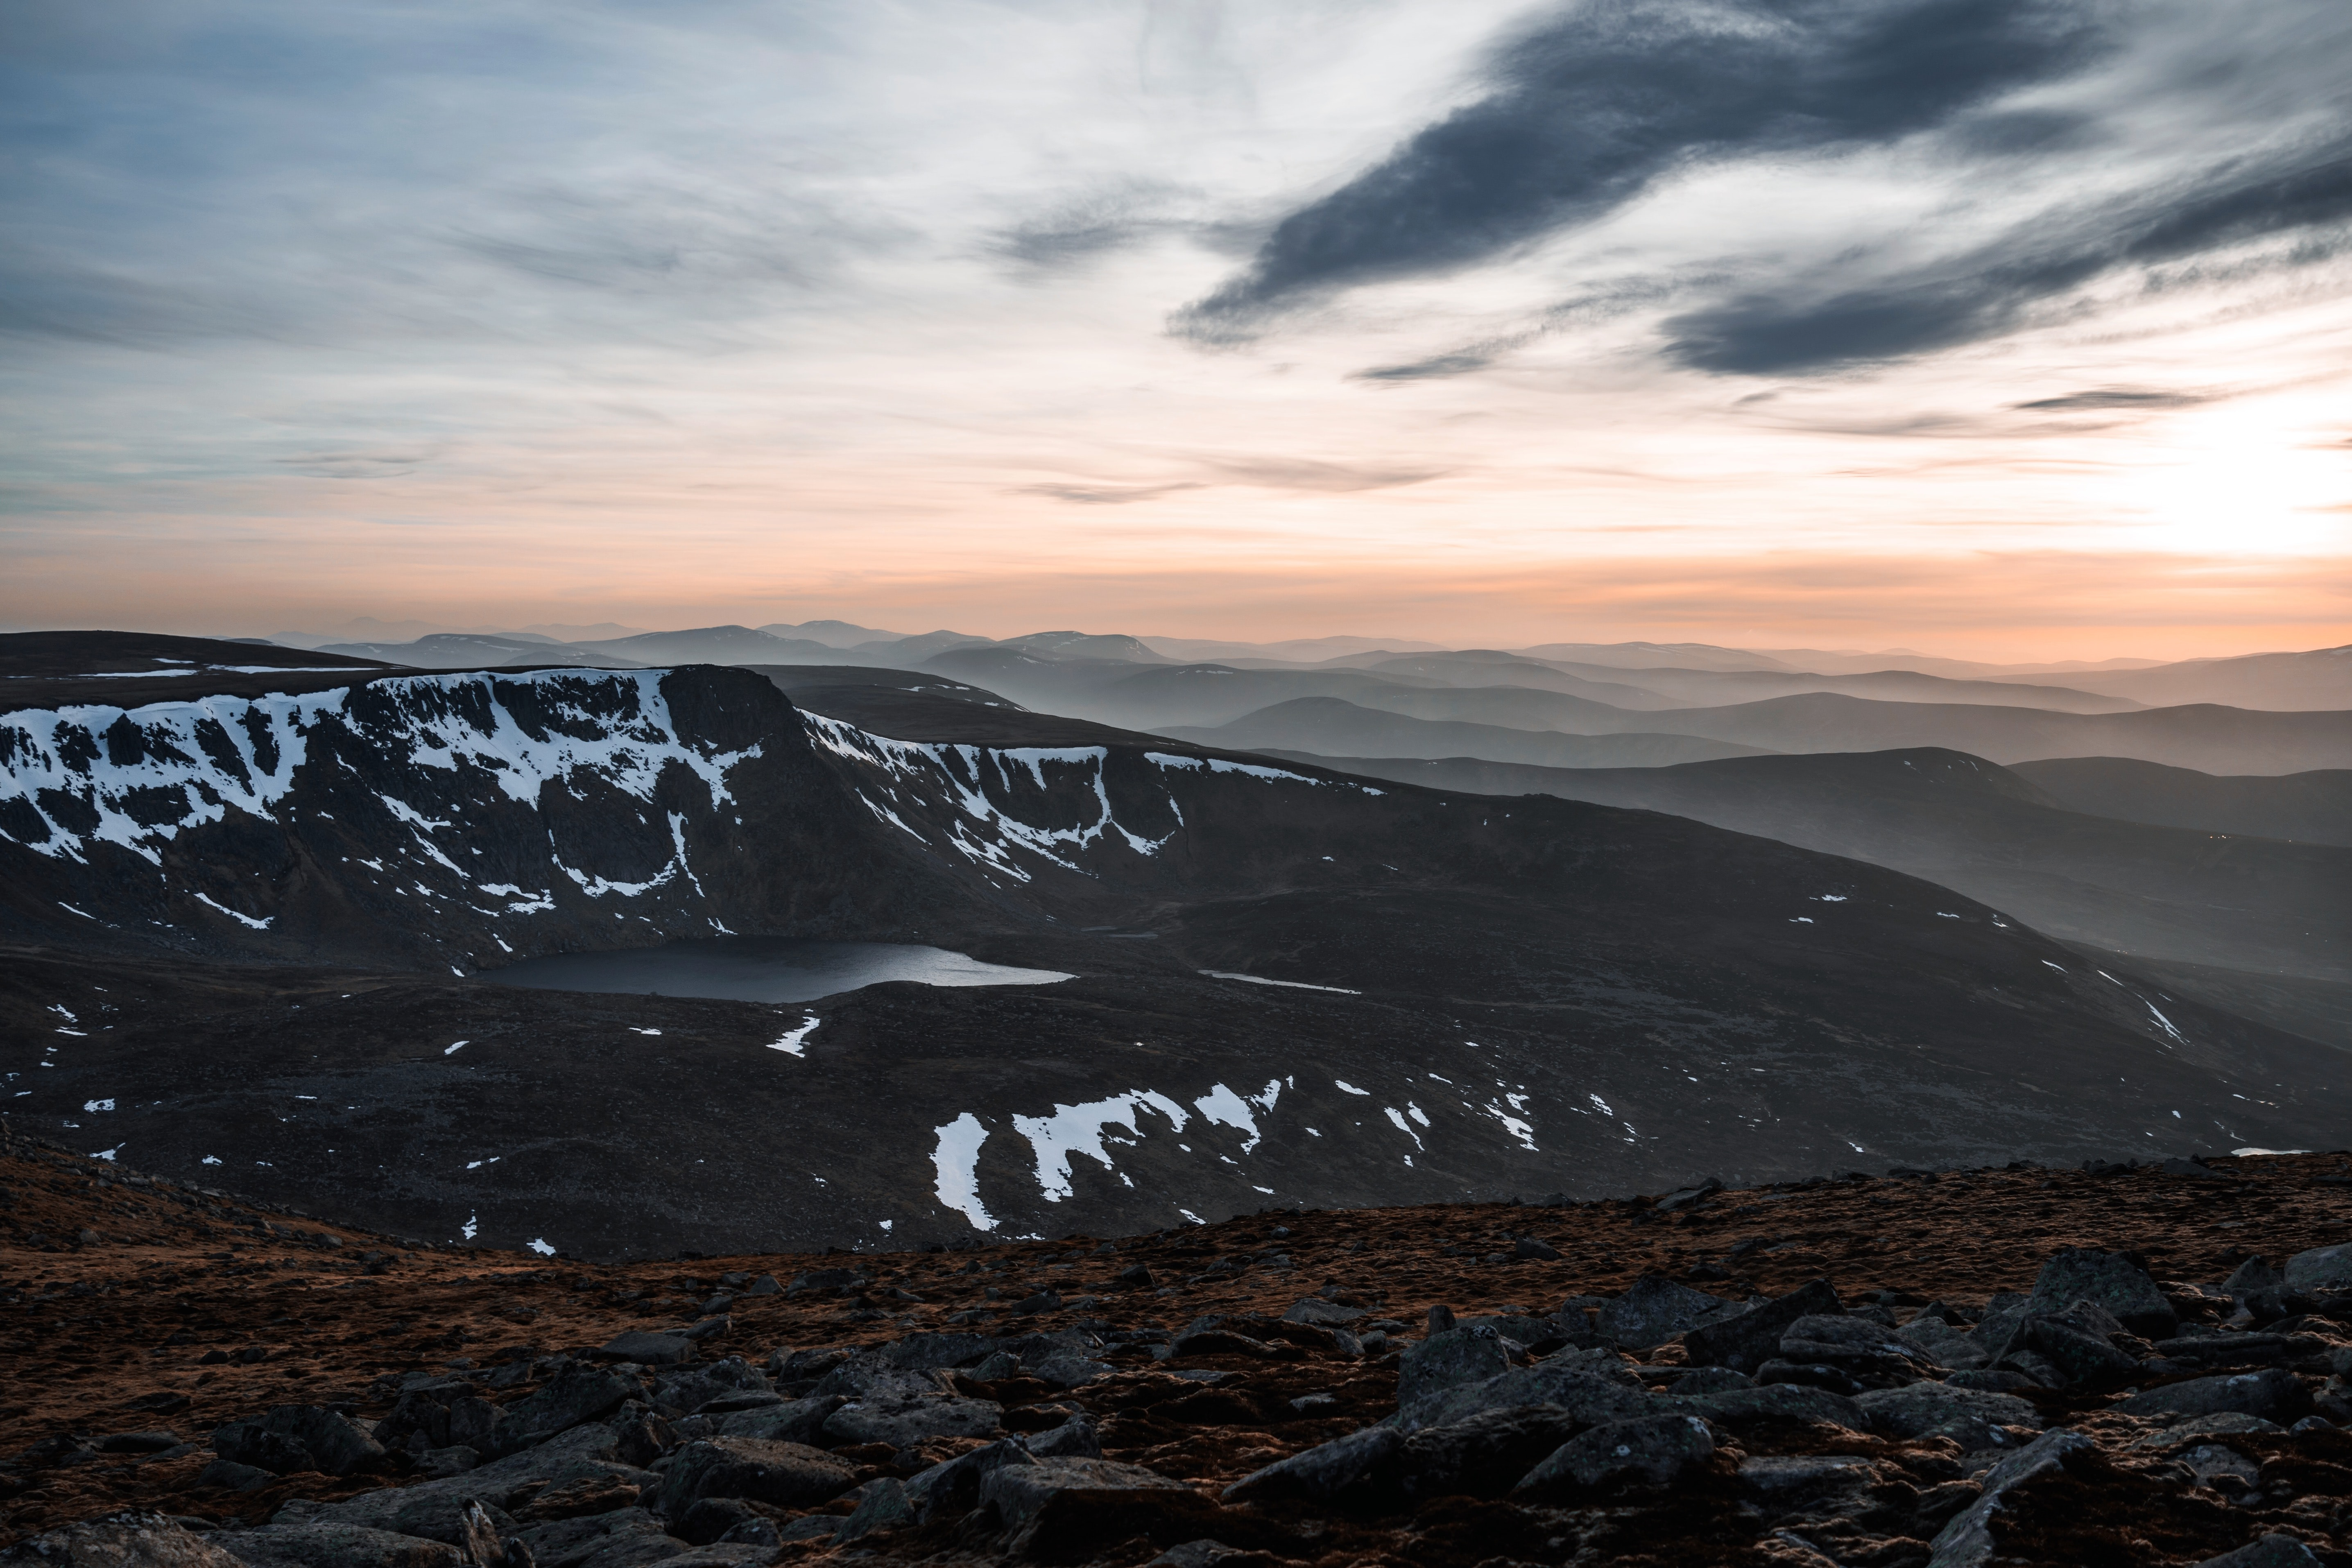 Clouds swept across sky with sunset  and snowy mountains in distance at Lochnagar